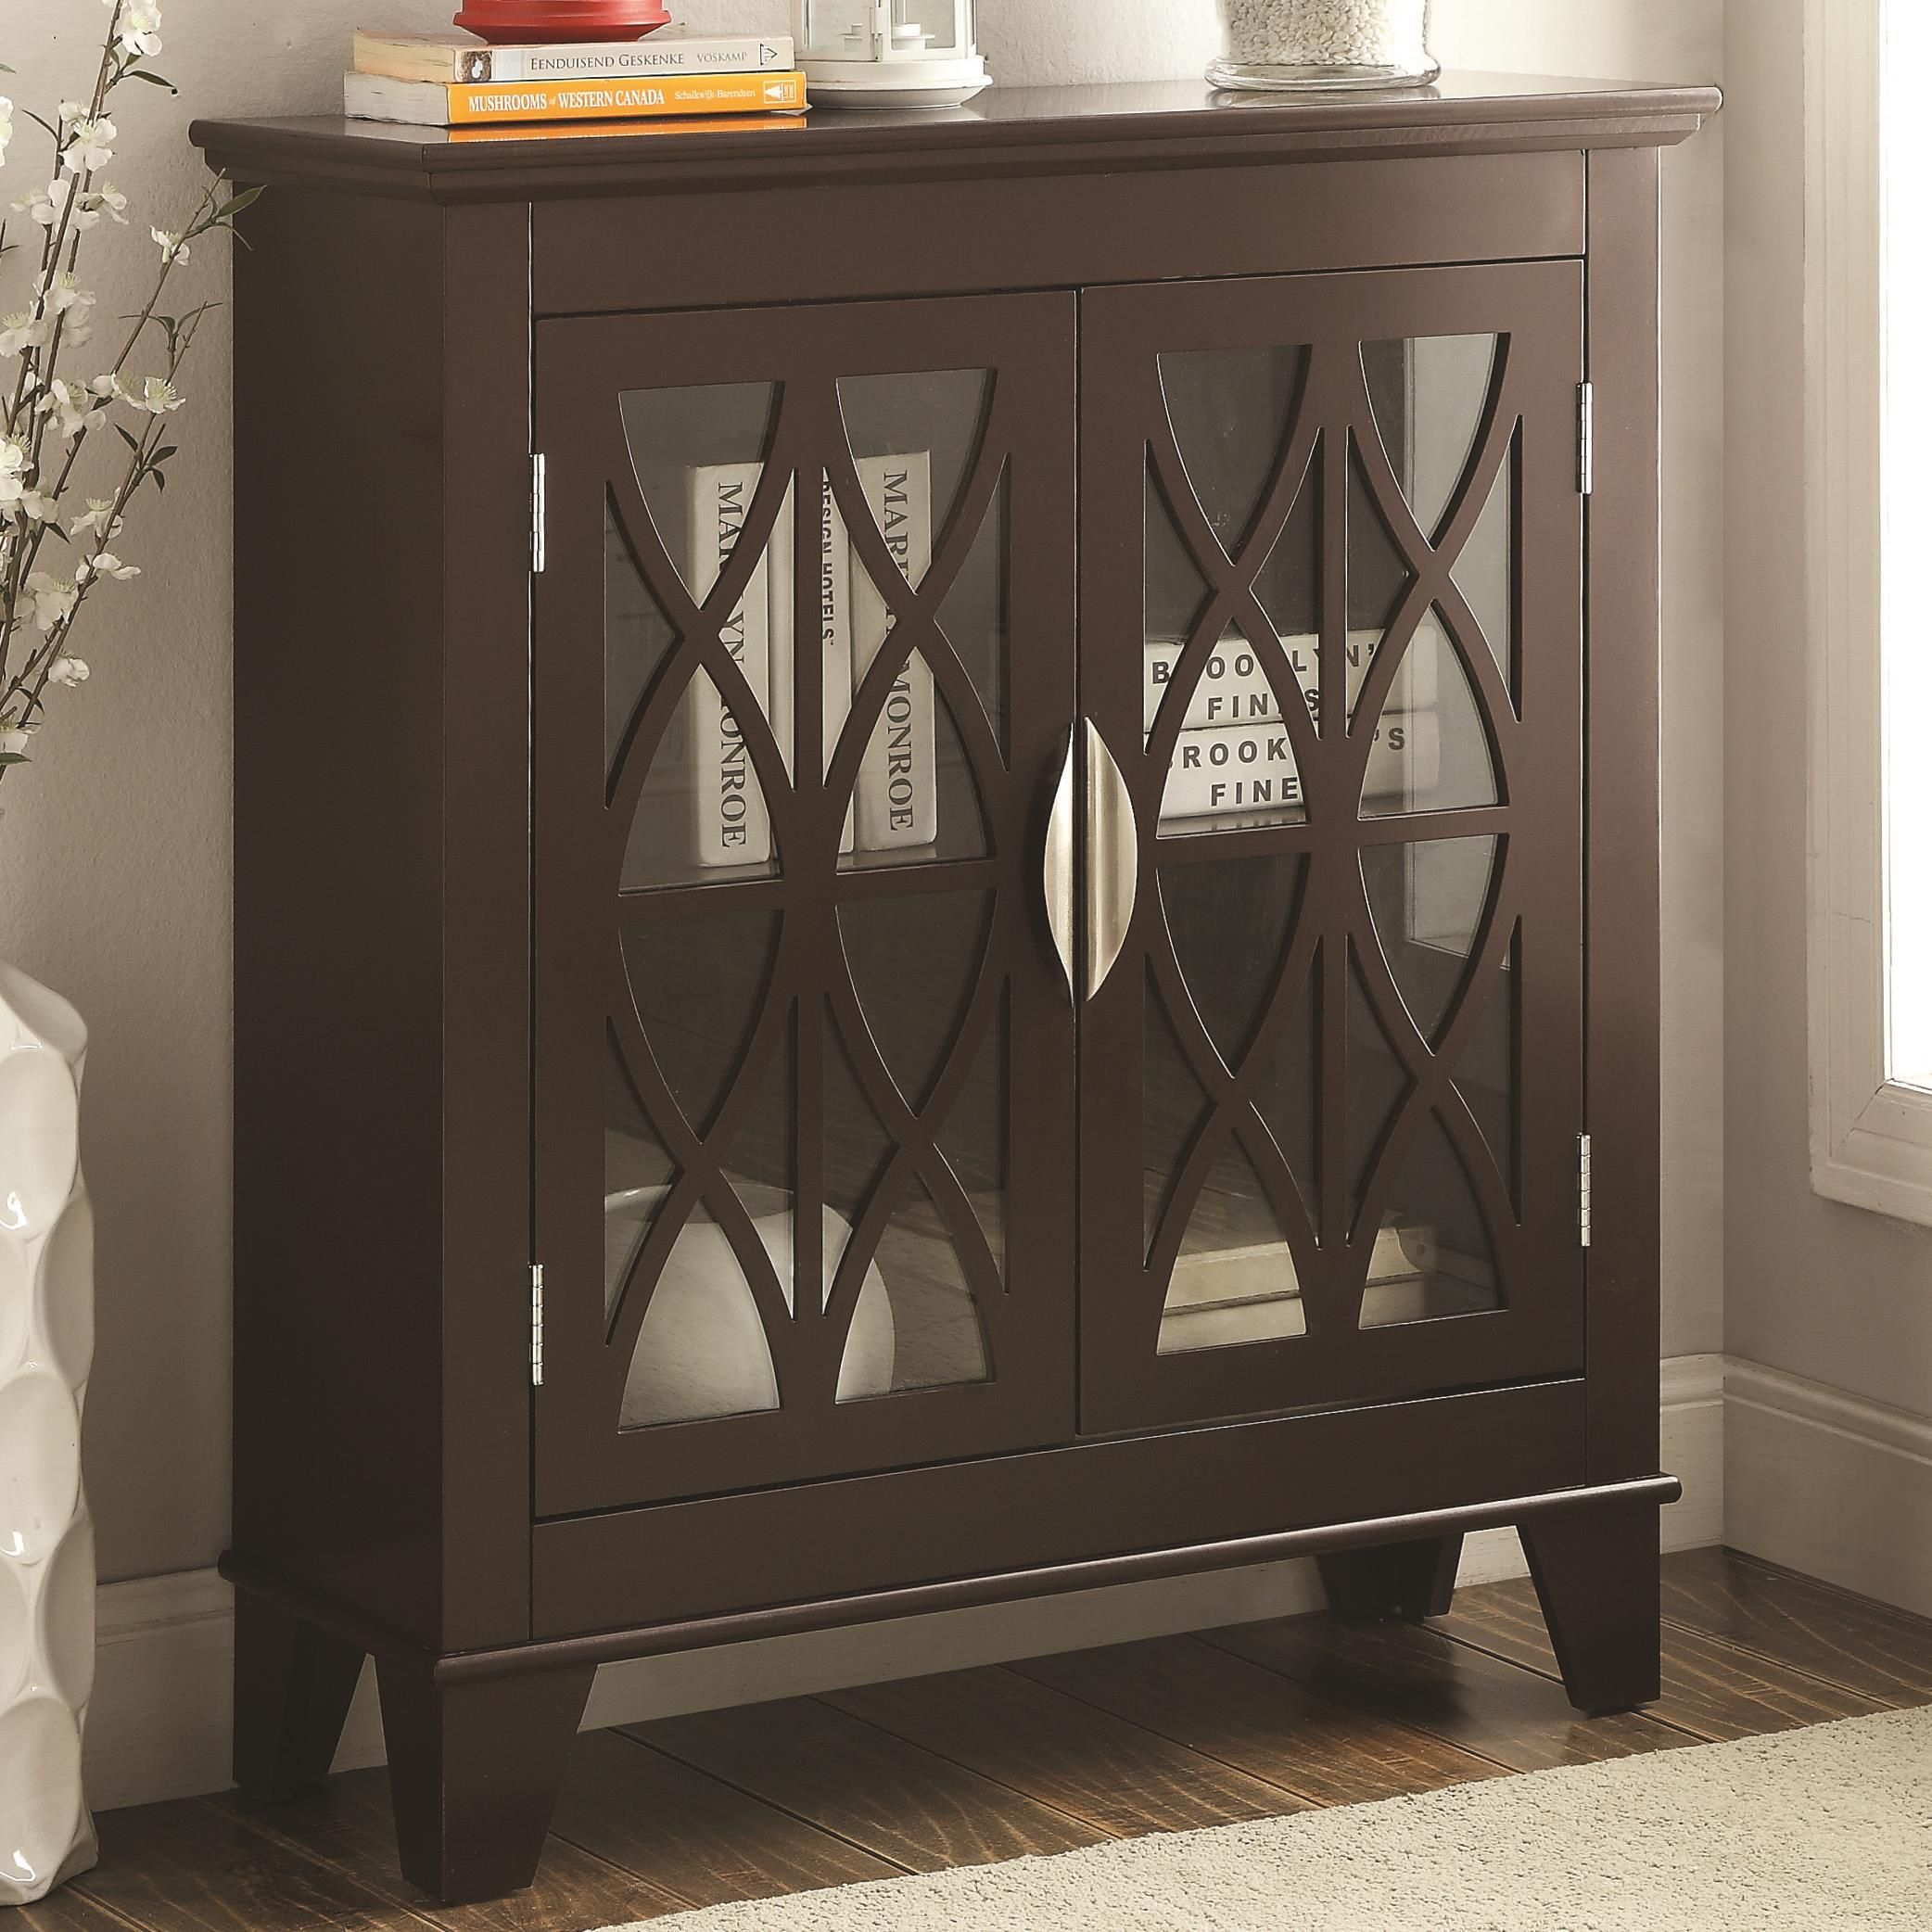 Coaster Accent Cabinets Accent Cabinet Item Number 950311 With